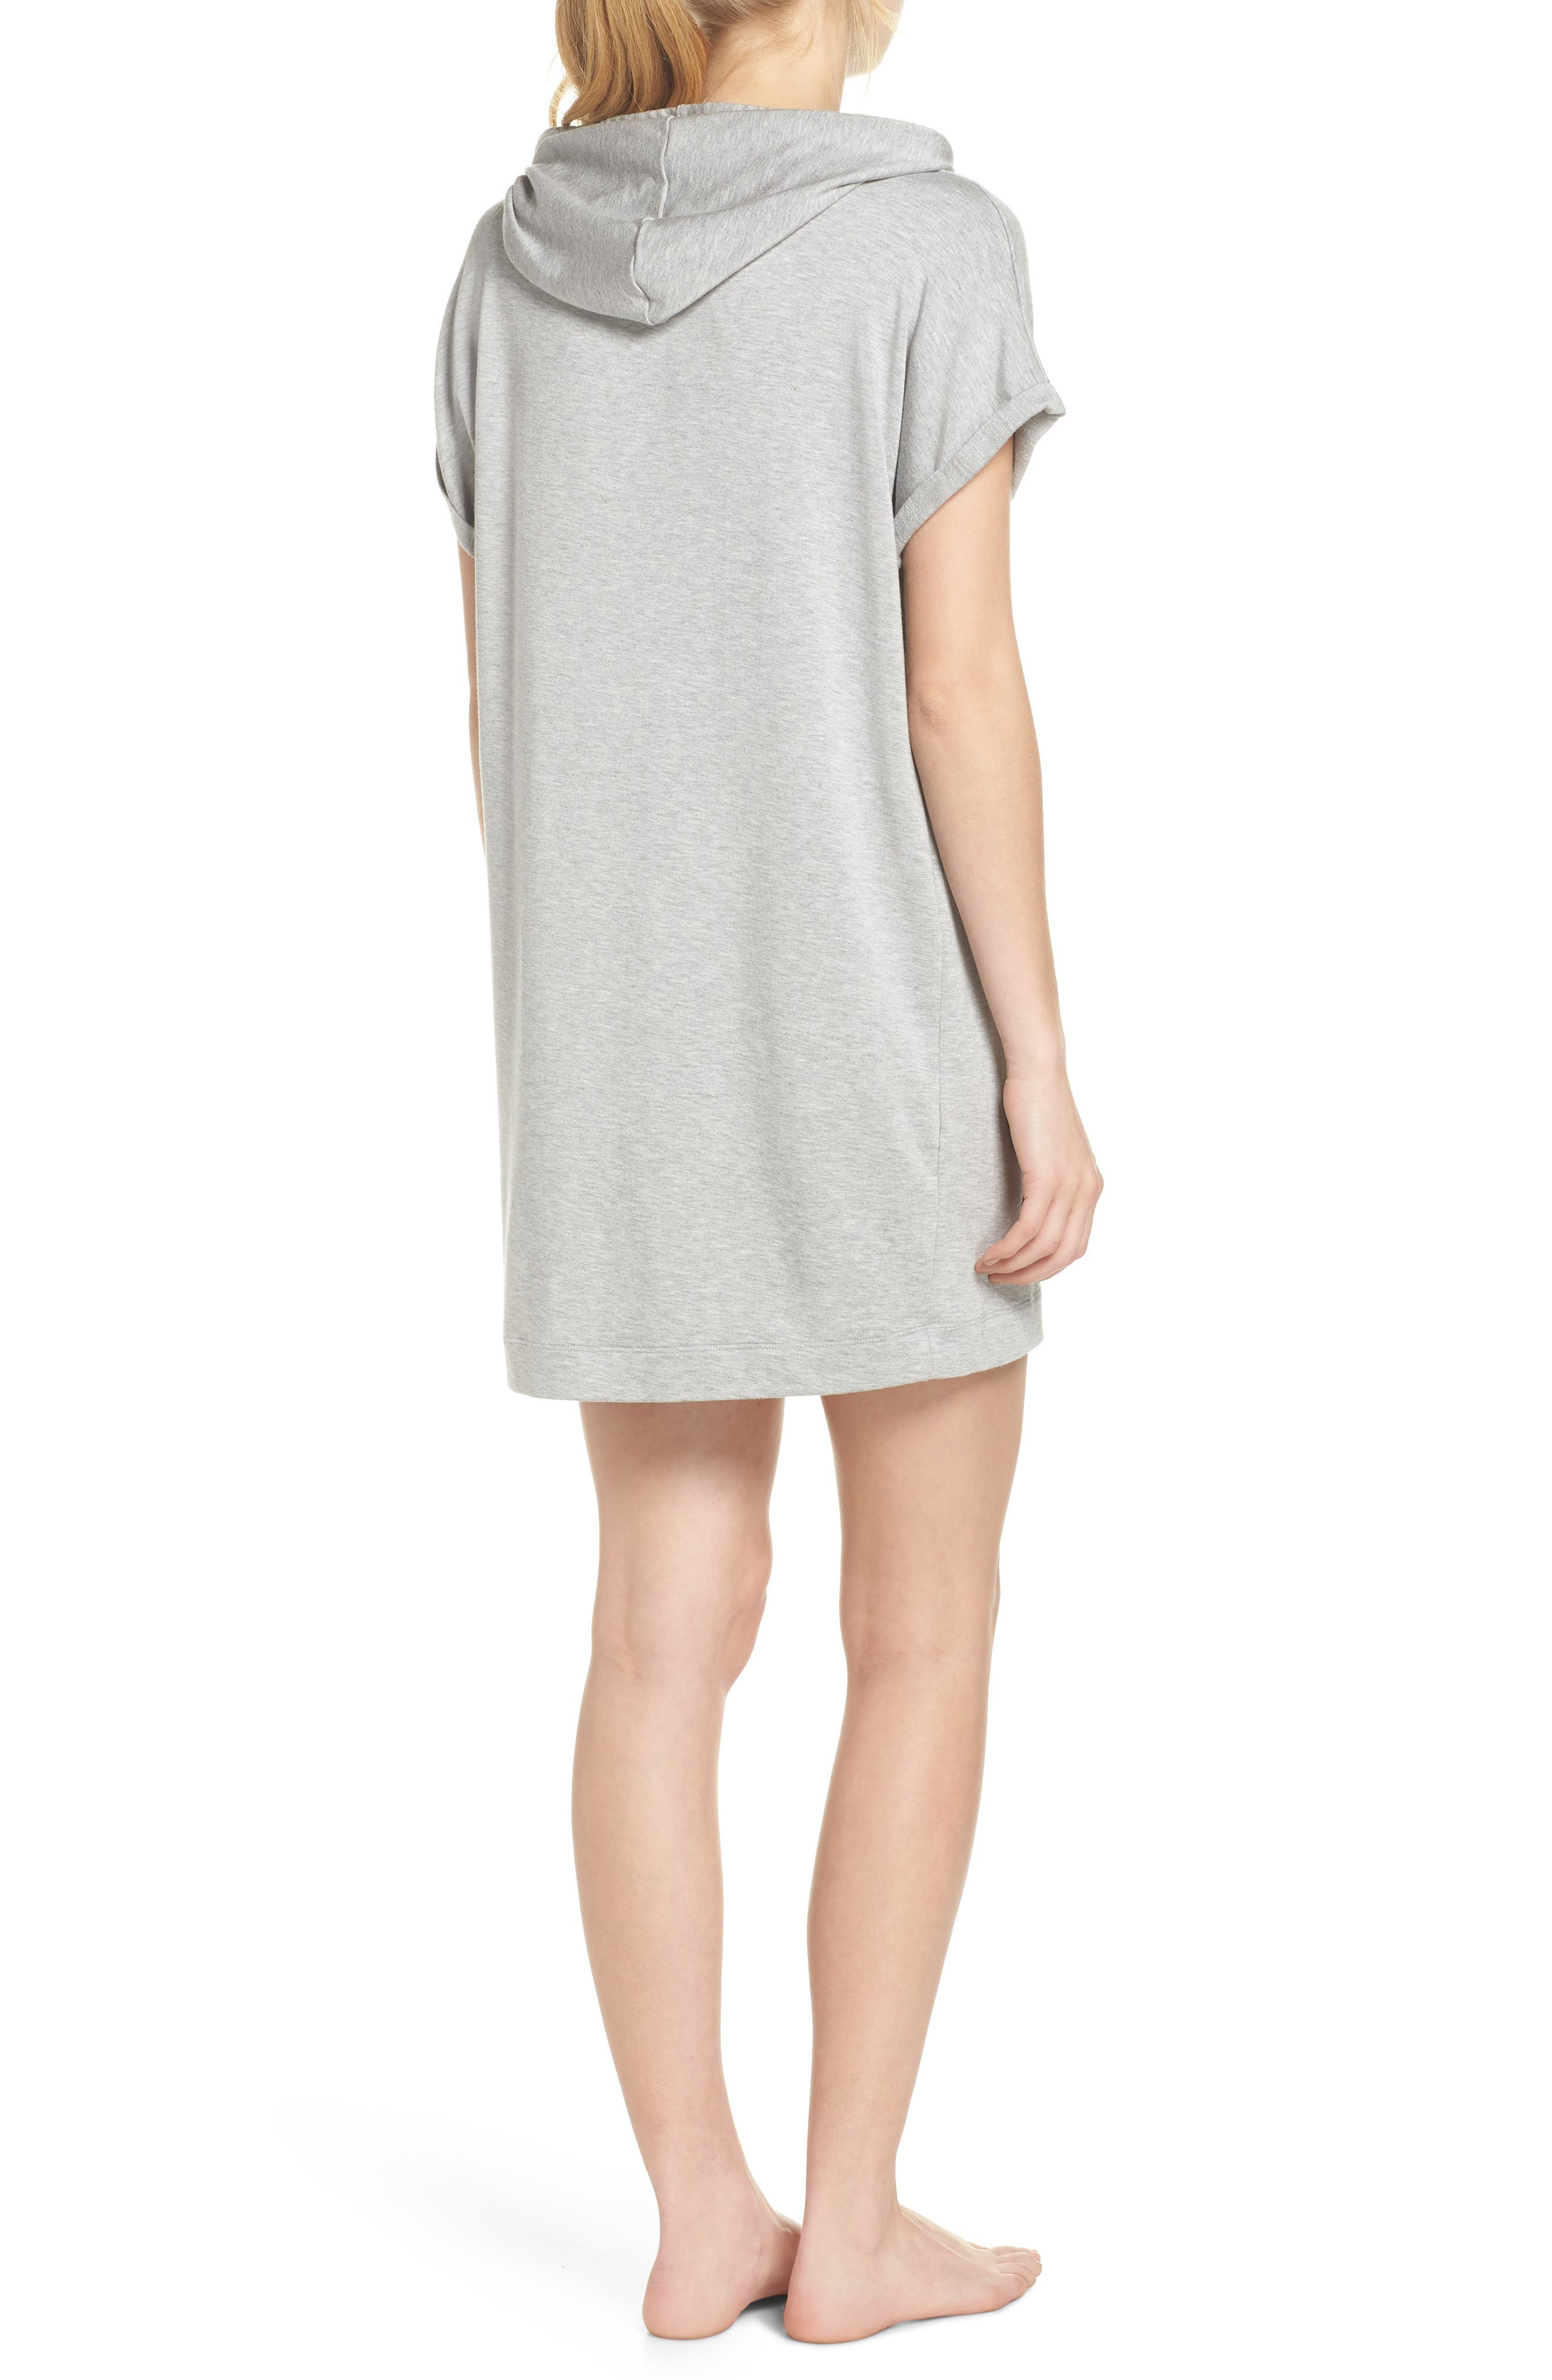 It's All Hoodie Hooded Sweatshirt Dress,                             Alternate thumbnail 2, color,                             Light Heather Gray